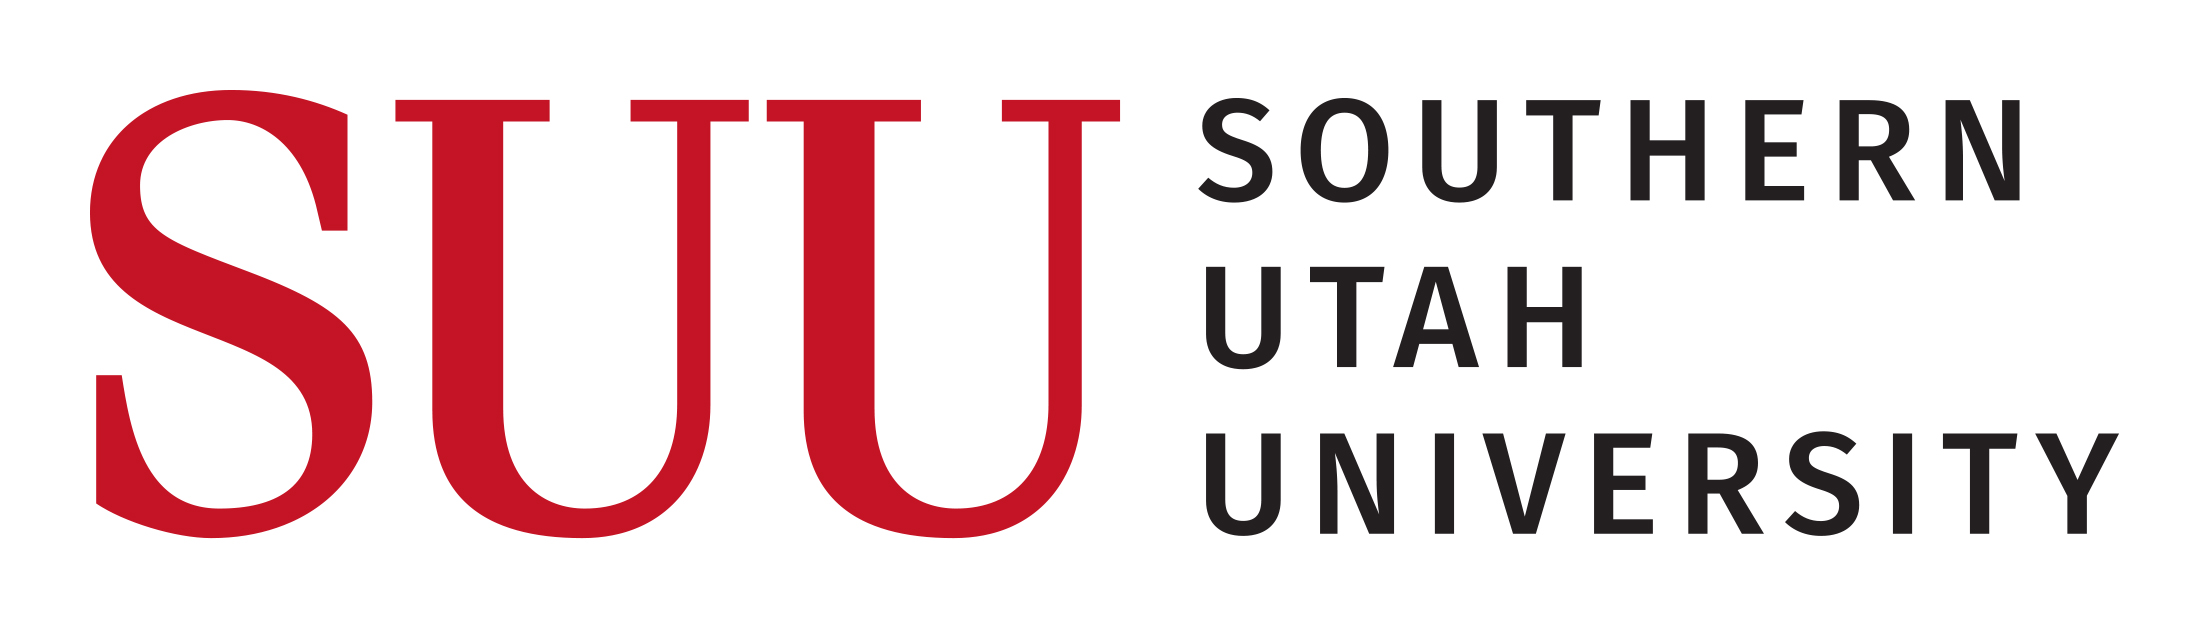 decorative logo linking to Southern Utah University main landing page